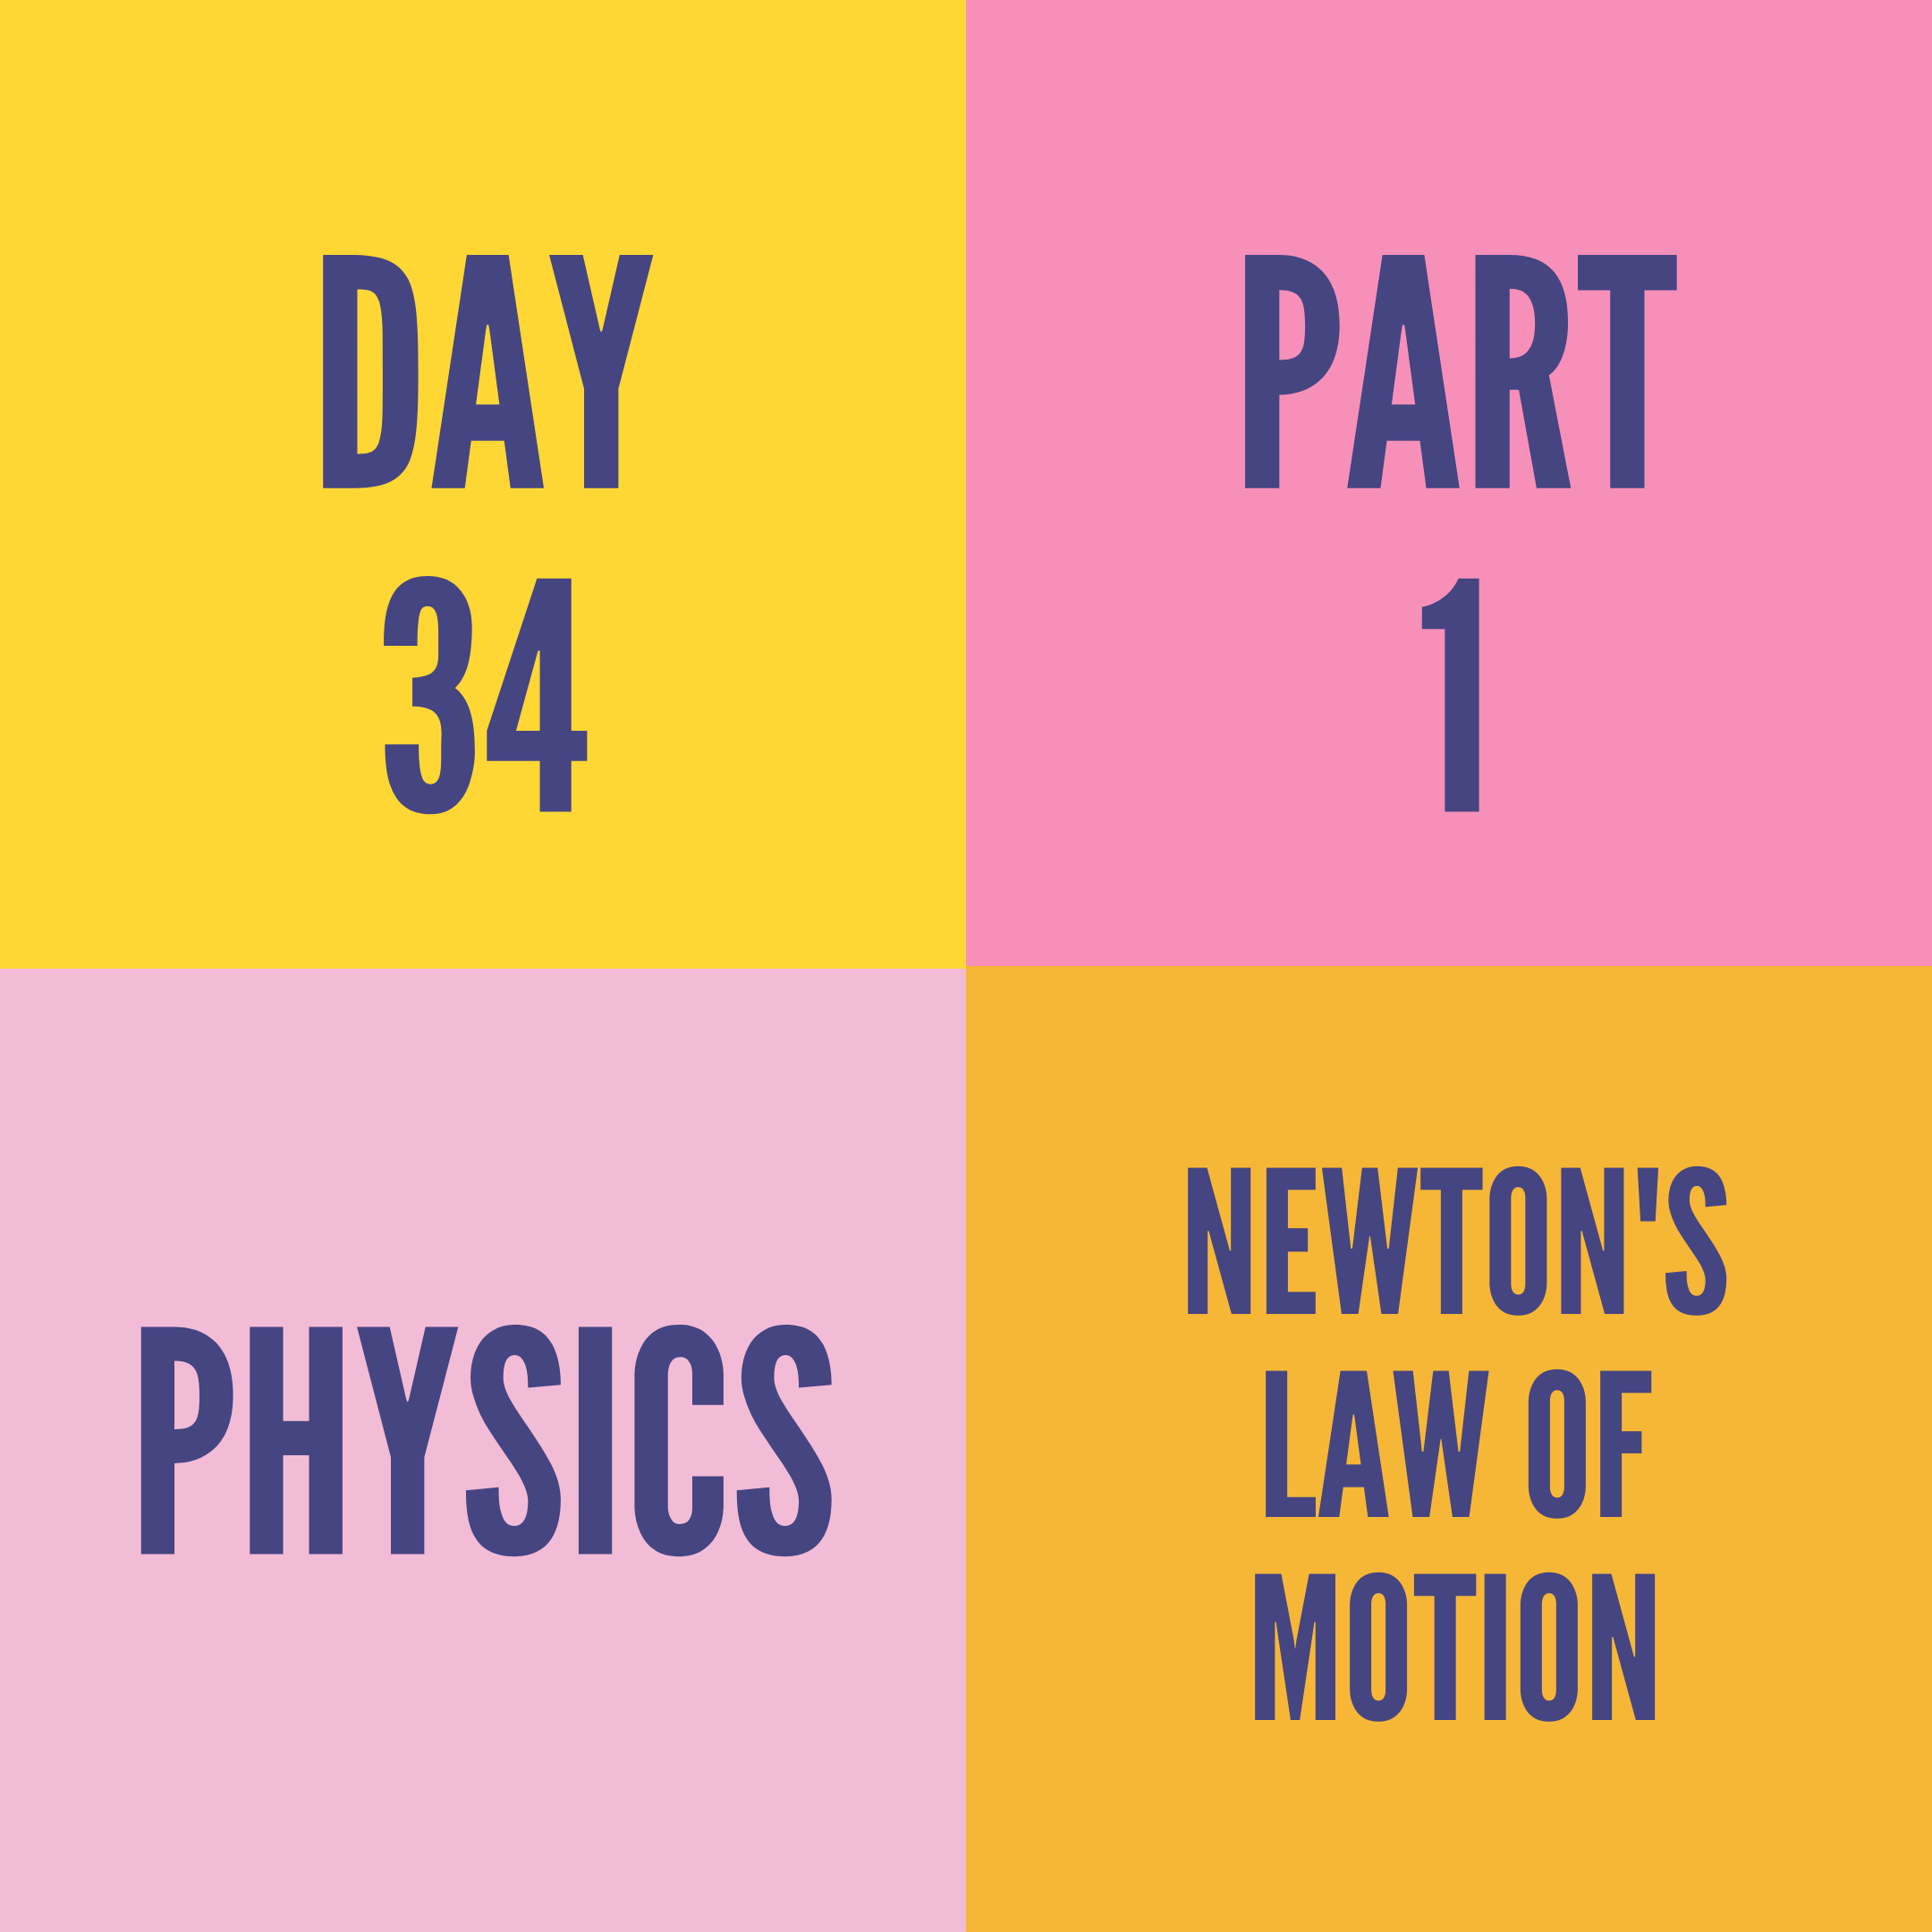 DAY-34 PART-1 NEWTON'S LAW OF MOTION